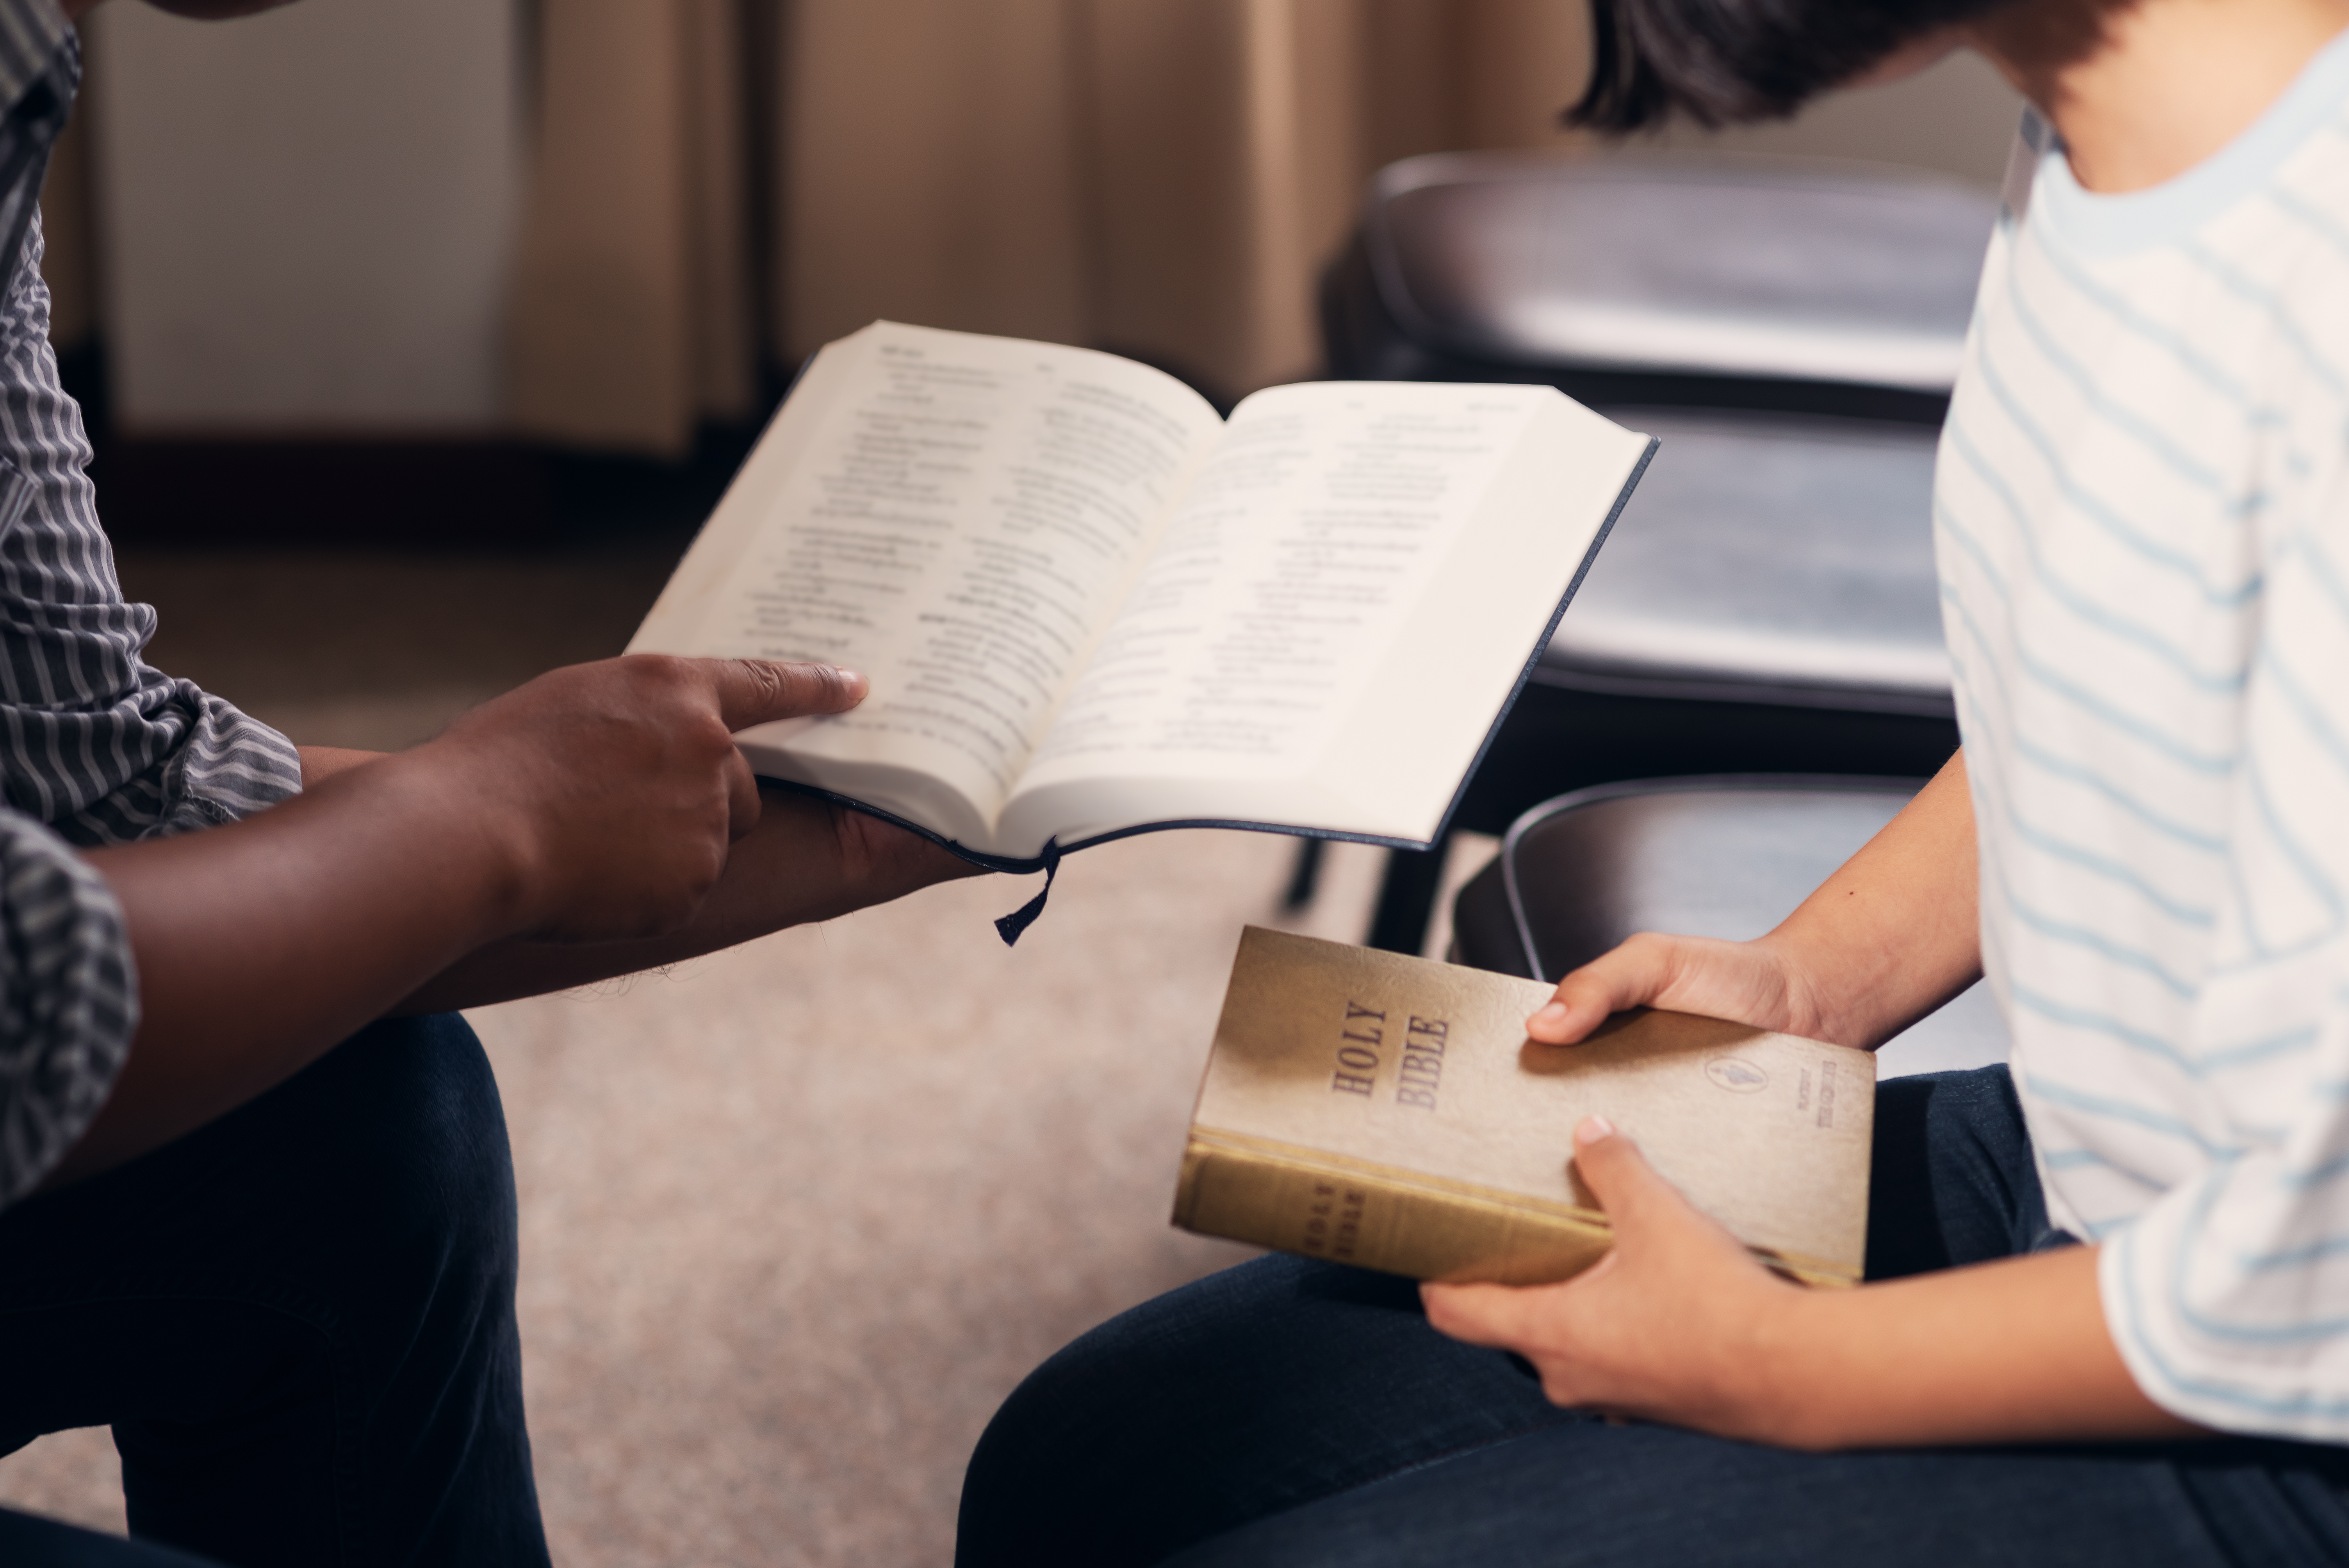 Students studying the Bible (Shutterstock/ palidachan)